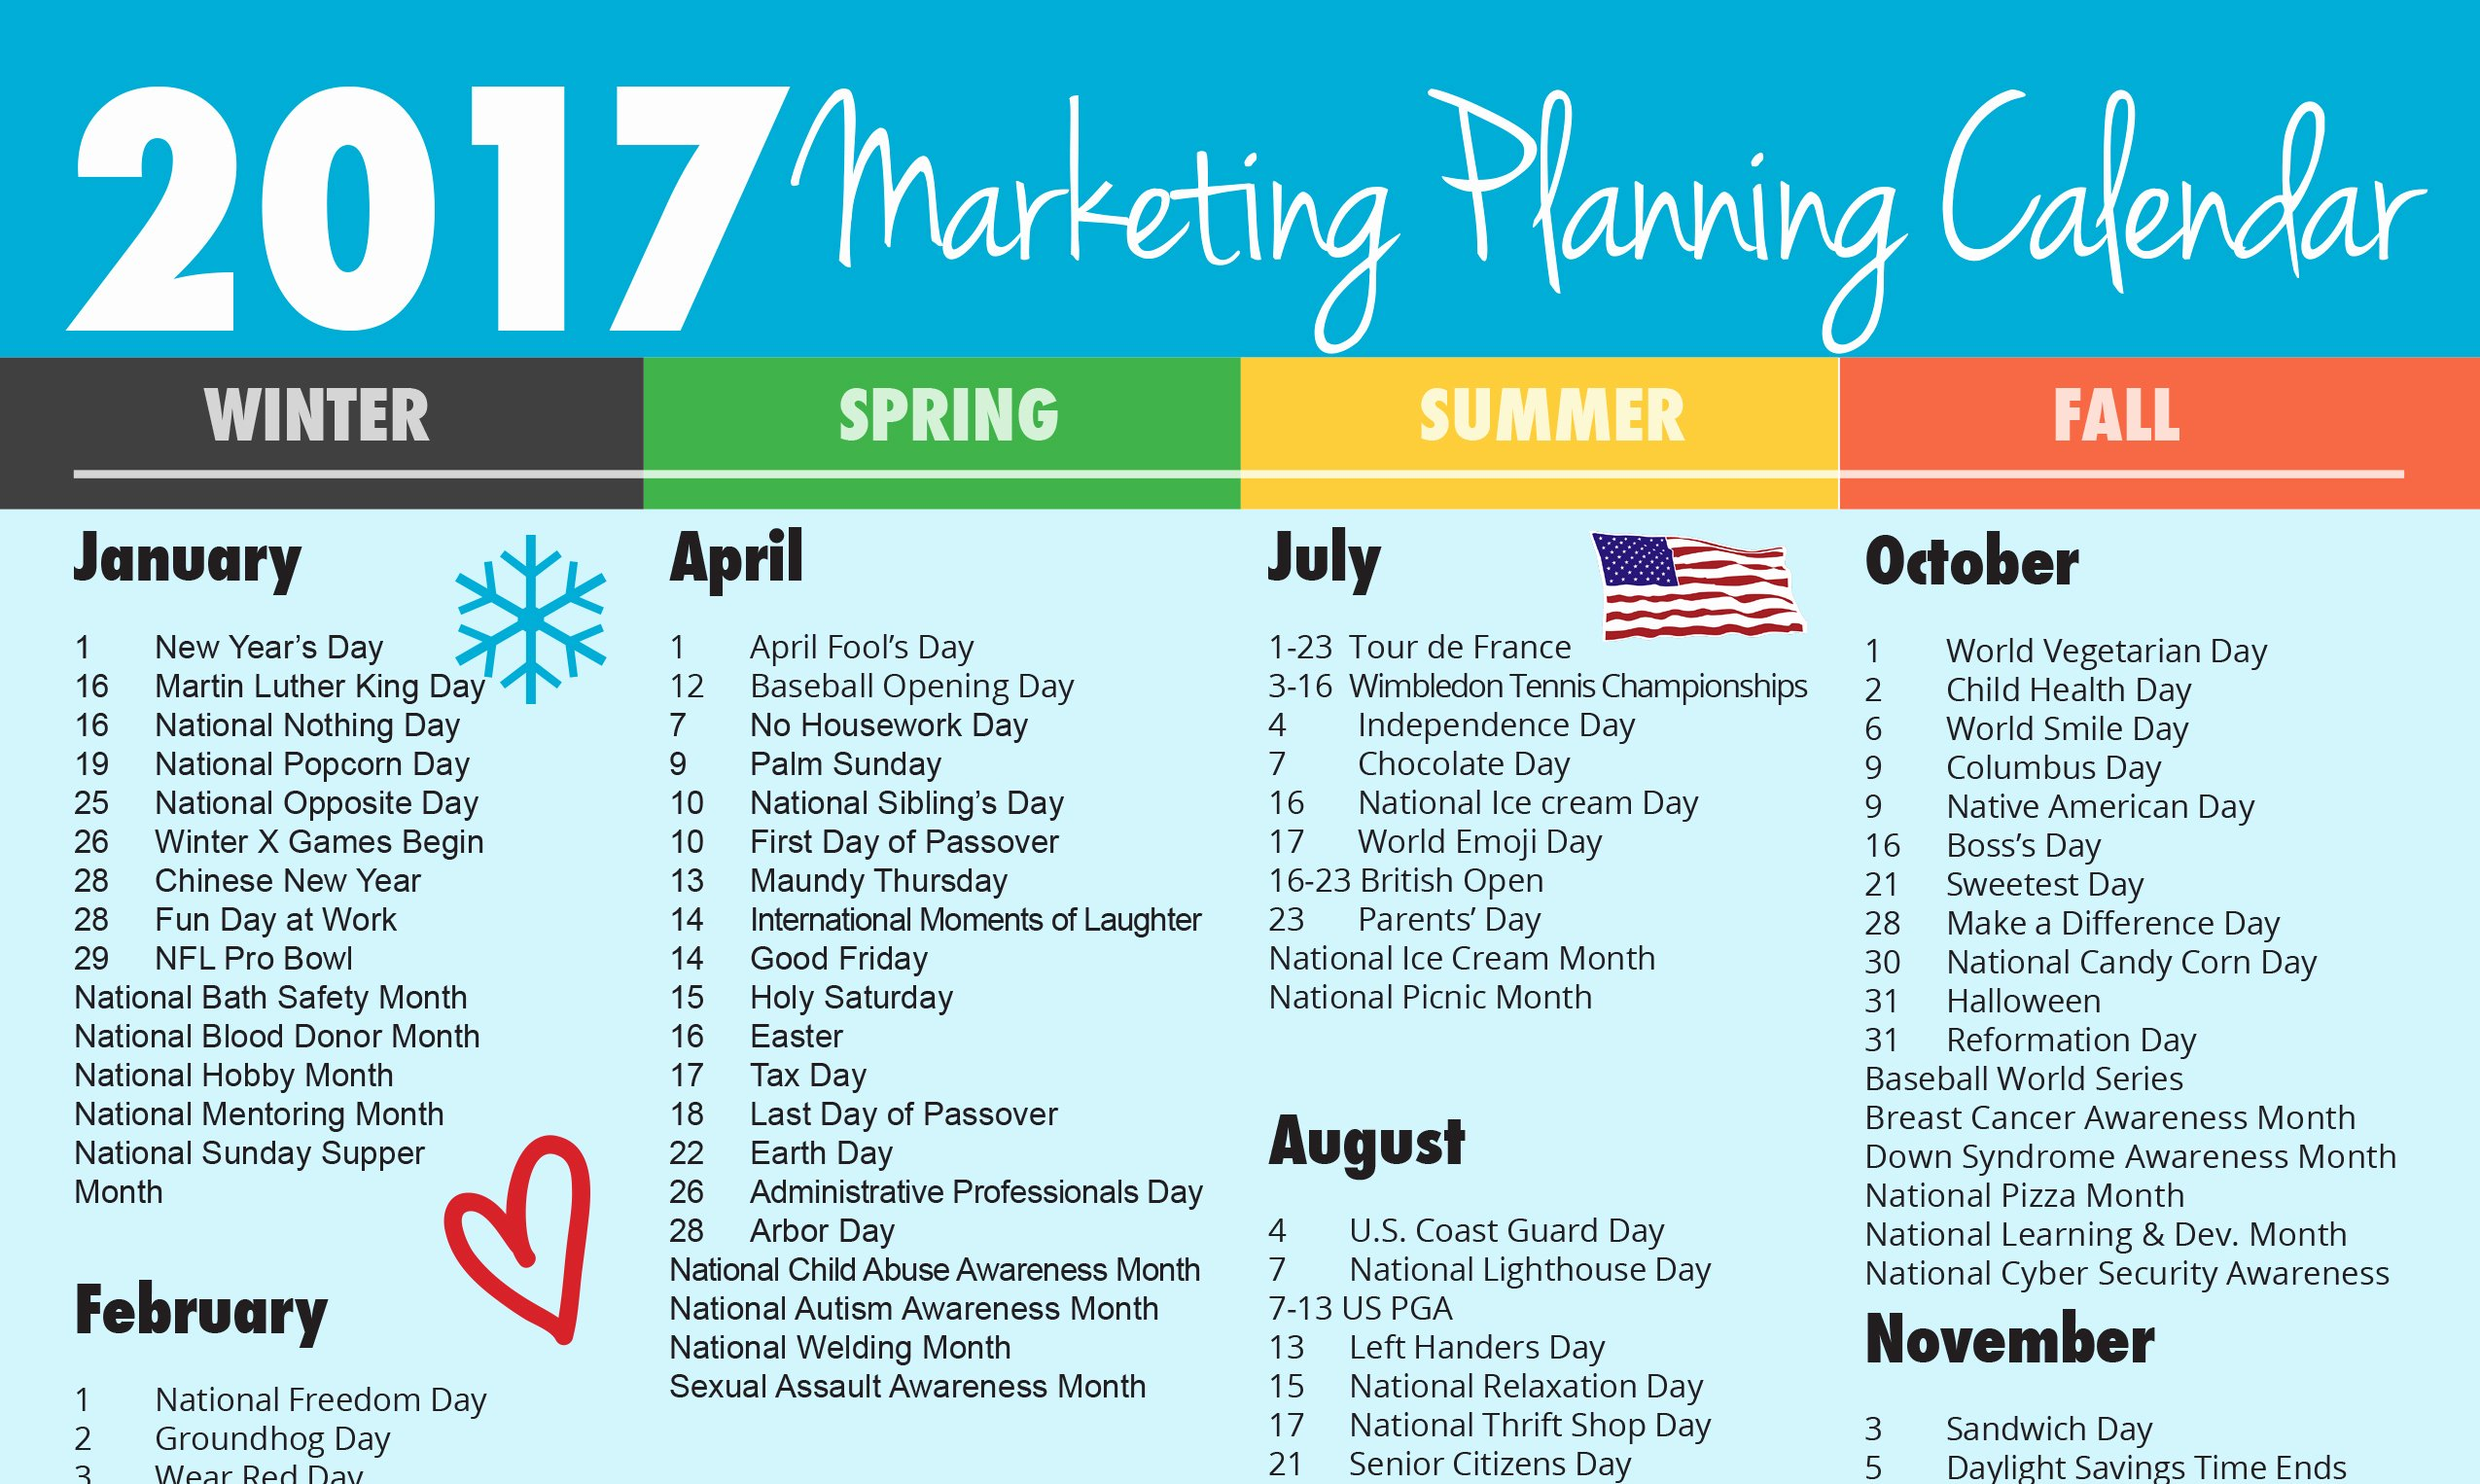 Marketing Calendar Template 2017 Beautiful Ultimate 2017 Marketing Planning Calendar Rebecca